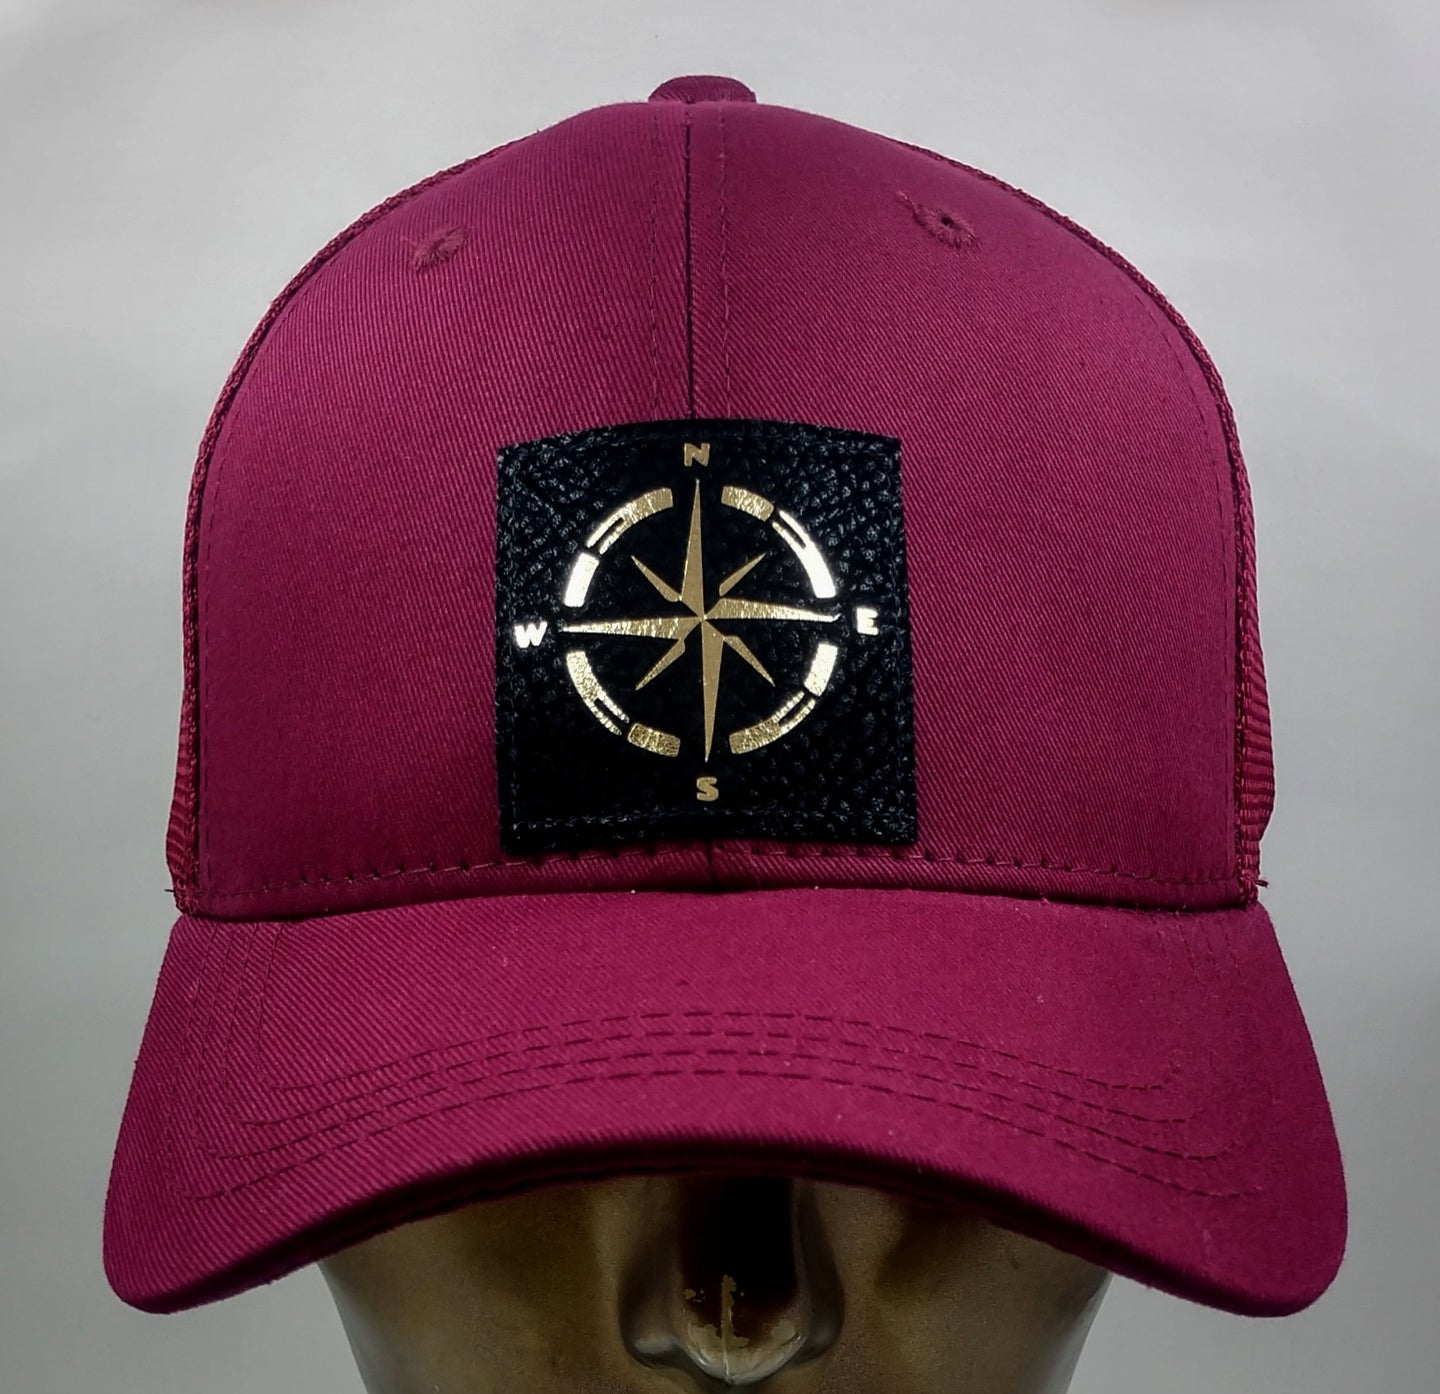 Buddha gear Buddha Lid Buddha wear Burgundy snapback with hand made compass symbol   Find your true North with your Compass Buddha Beanie! Wearing a compass over your third eye is a great that it's never too late in life to change or alter your course.  The compass points in four directions; North, South, East and West, harkening back to sailors and ships traversing the stormy seas on their way home from a long journey. The compass holds meaning for a traveler, being a symbol for guidance, the ability to po